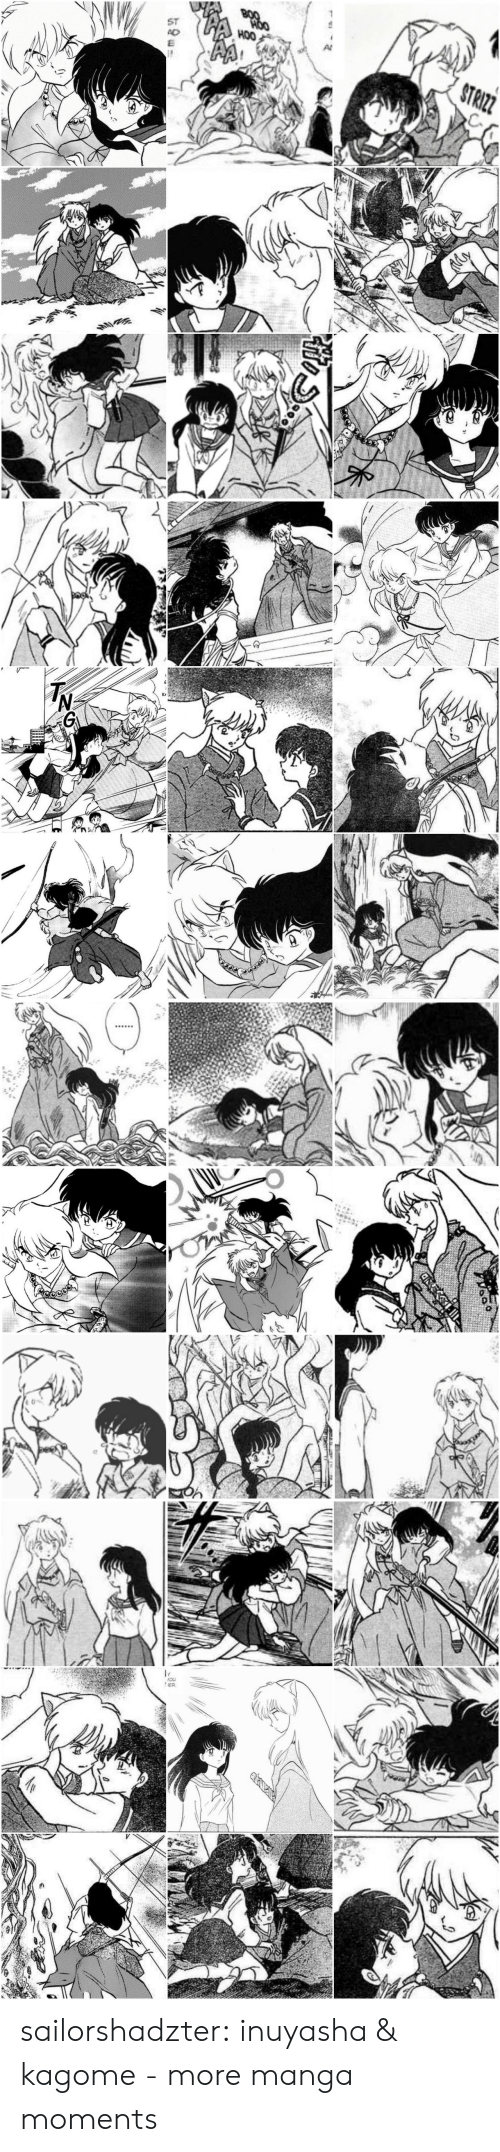 hoo: BOO  HOO  ST  AD  HOO  STRIZZ   anc   ఆలో  ఇం   You  NER sailorshadzter:  inuyasha & kagome - more manga moments